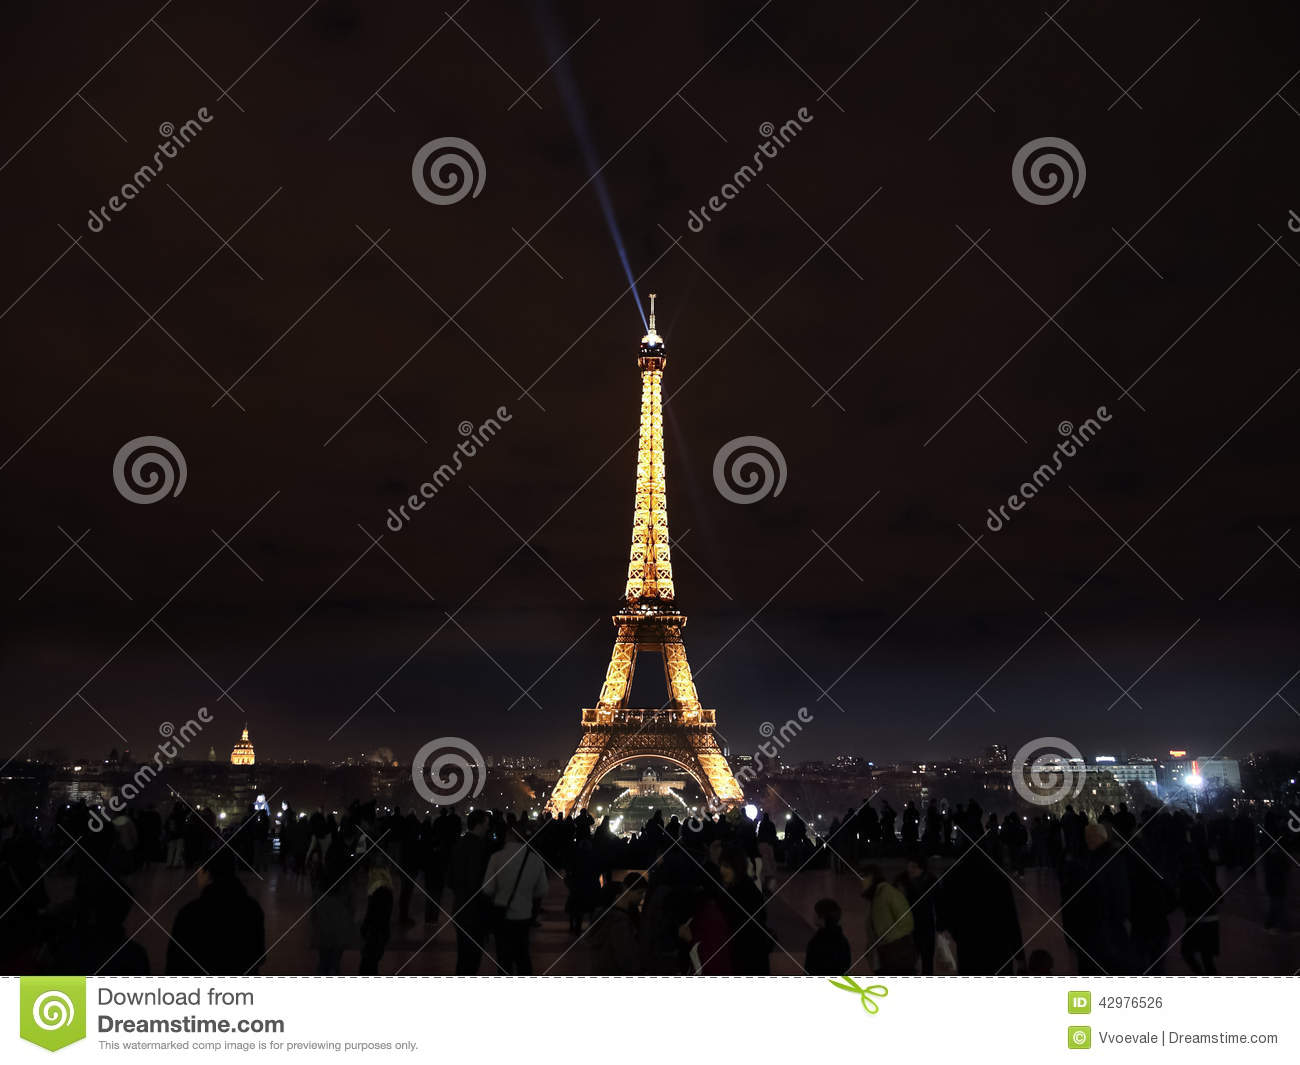 Illumination de nuit de tour eiffel paris photo ditorial image 42976526 - Illumination de paris ...